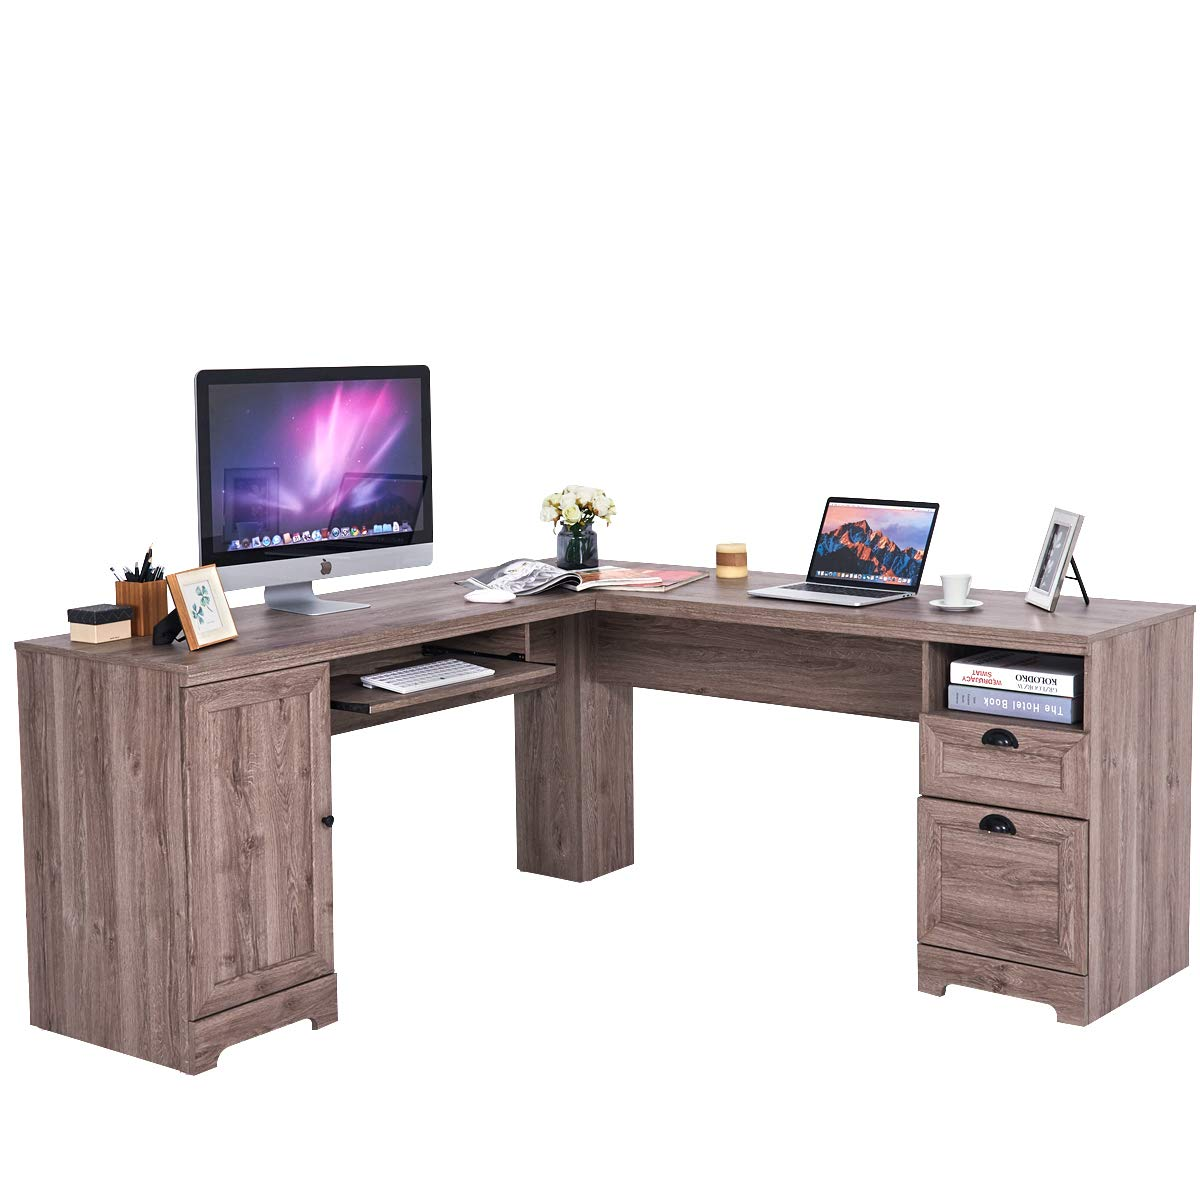 L shaped desks for home office Vintage Tangkula Lshaped Desk Corner Computer Desk With Drawers And Storage Shelf Home Office Desk Sturdy And Spacesaving Writing Table Wood Grain gray Amazoncom Amazoncom Tangkula Lshaped Desk Corner Computer Desk With